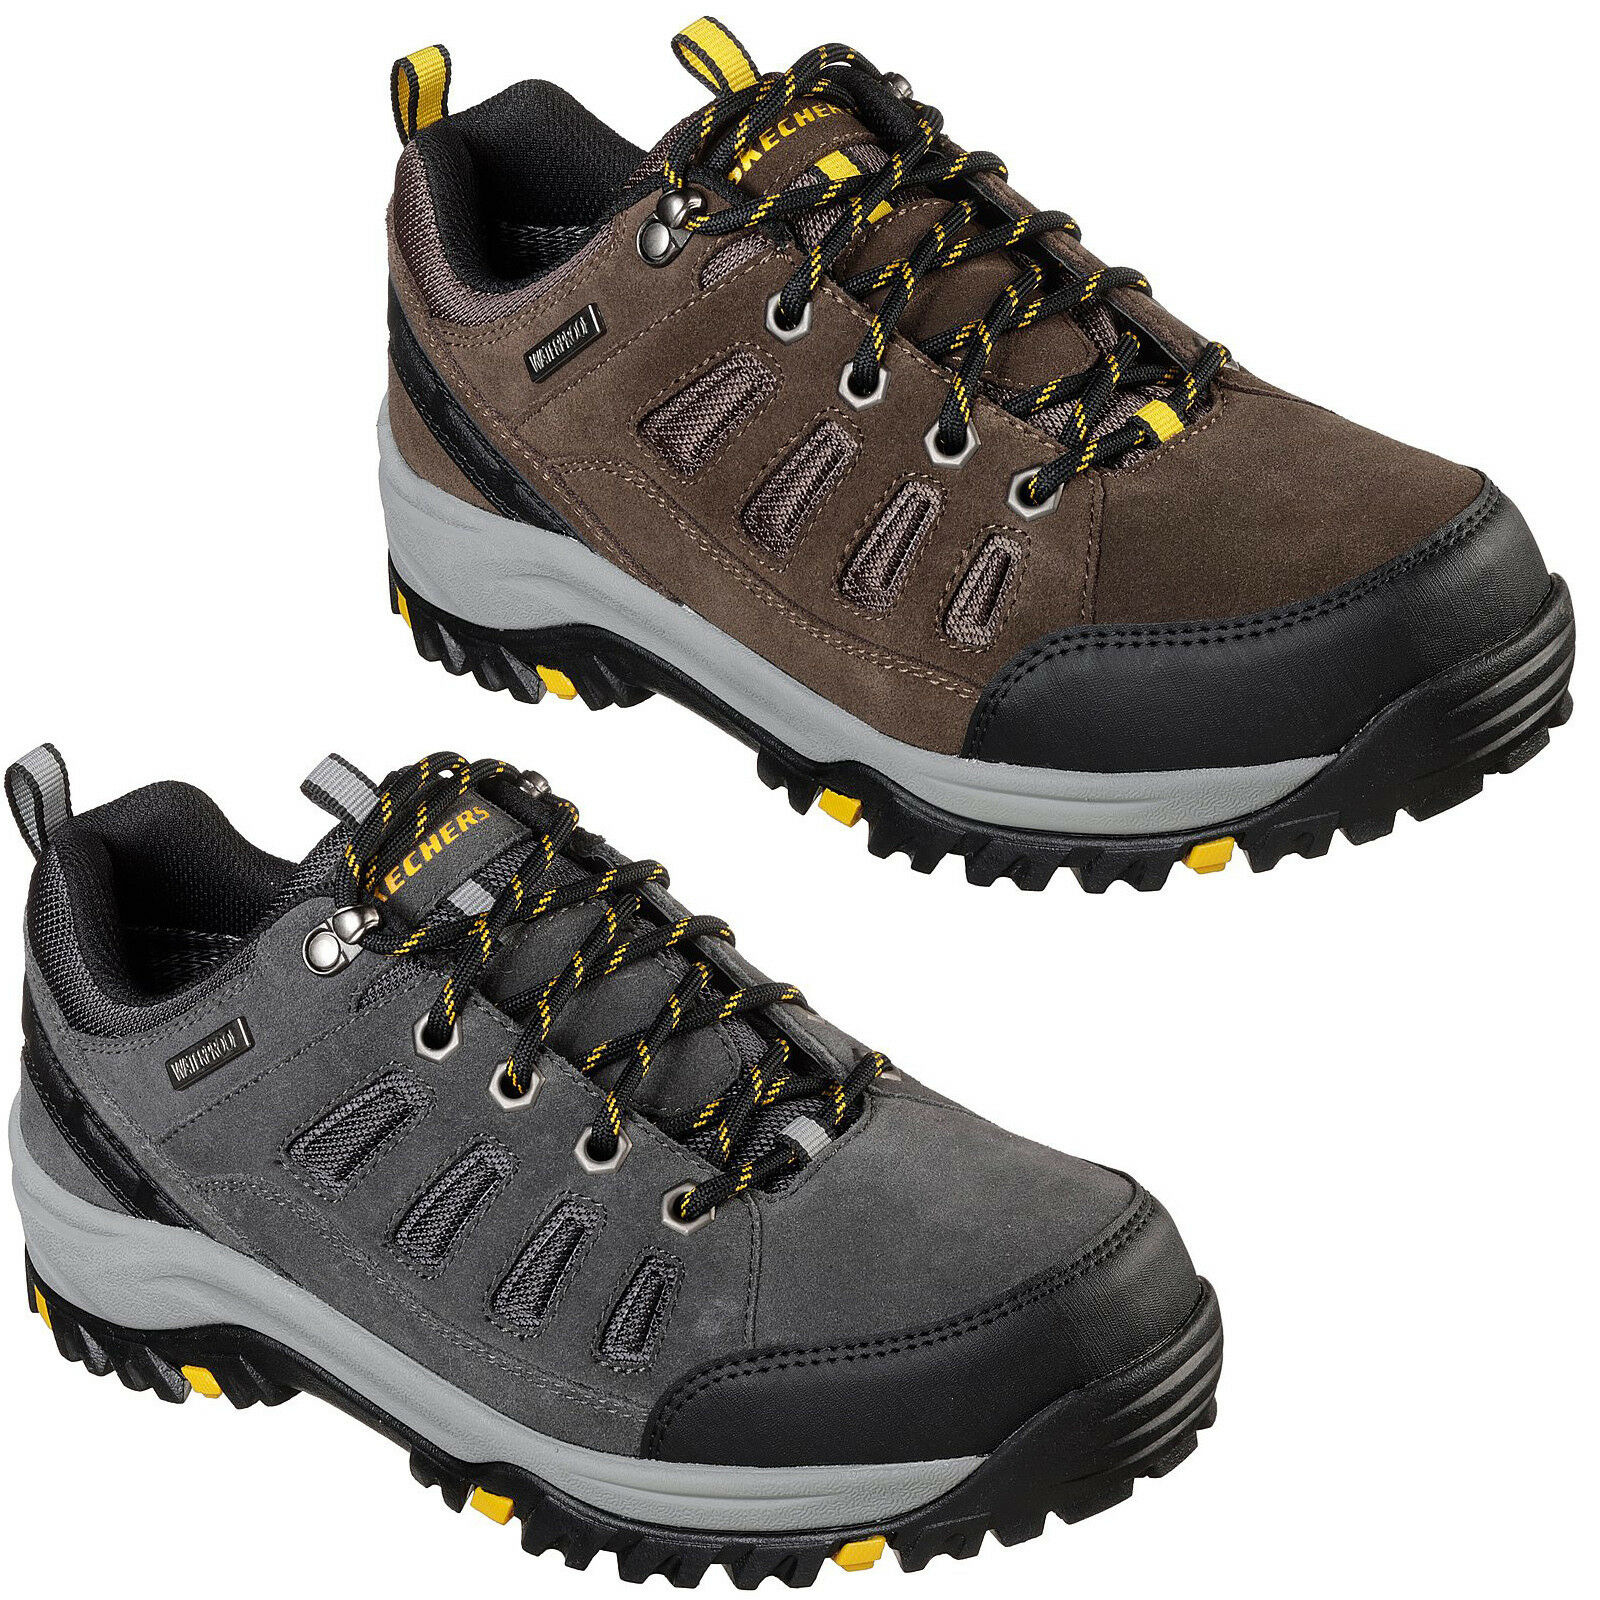 Skechers Relaxed 65673 Fit: Relment Sonego Trainers 65673 Relaxed  Uomo Memory Foam Trail Schuhes d66621